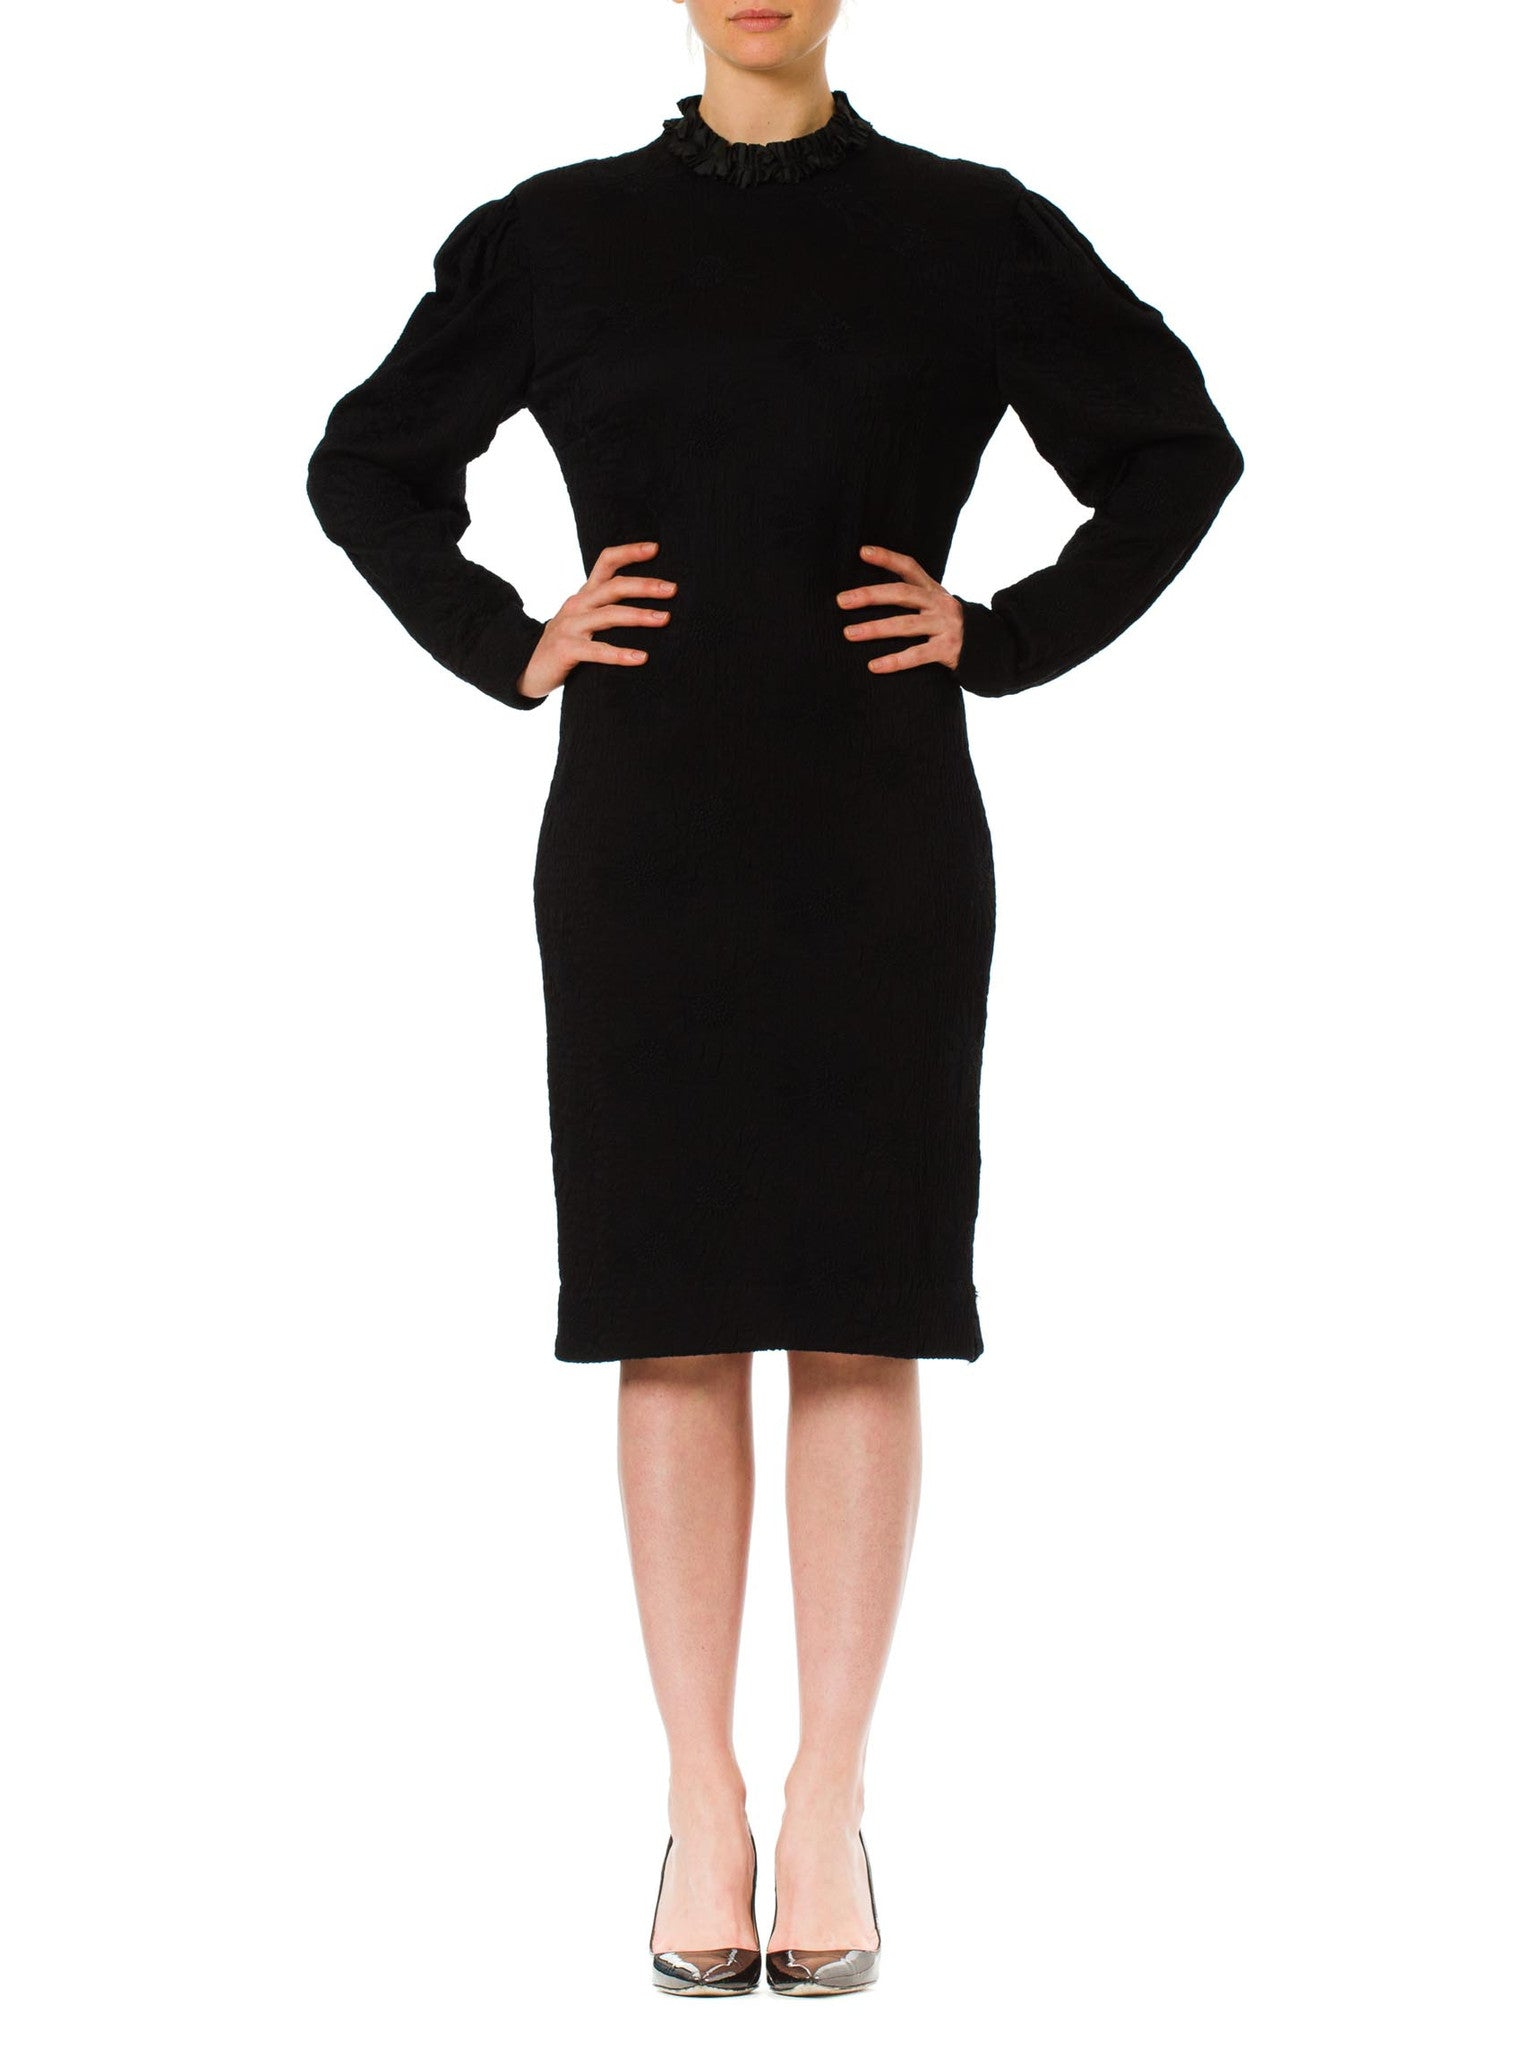 1960s Mod Louis Féraud Embroidered Floral Jacquard Long Sleeve Black Dress